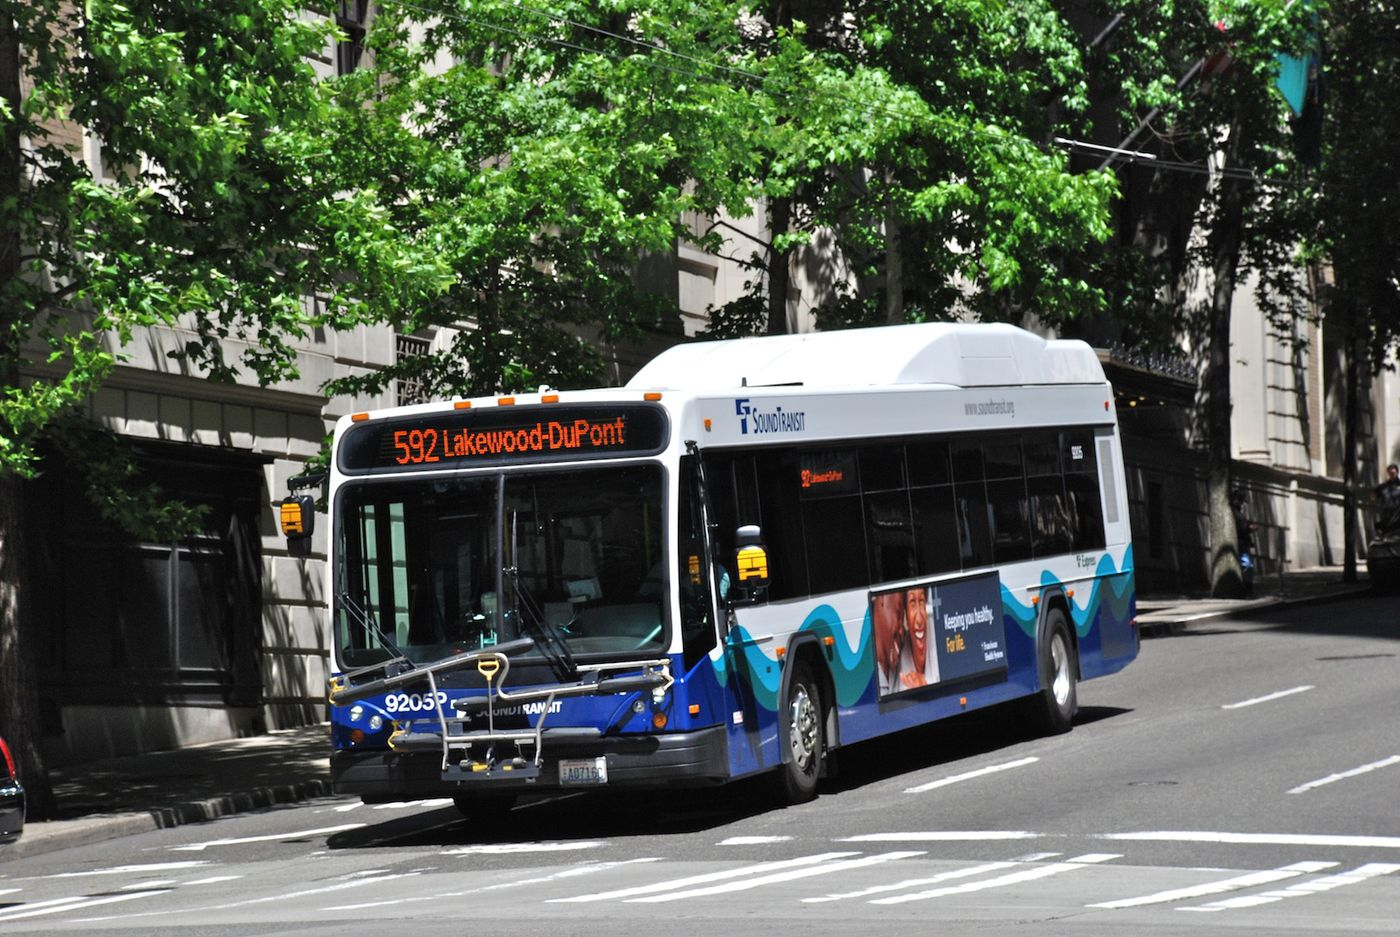 American cities are trying to improve their buses - Vox